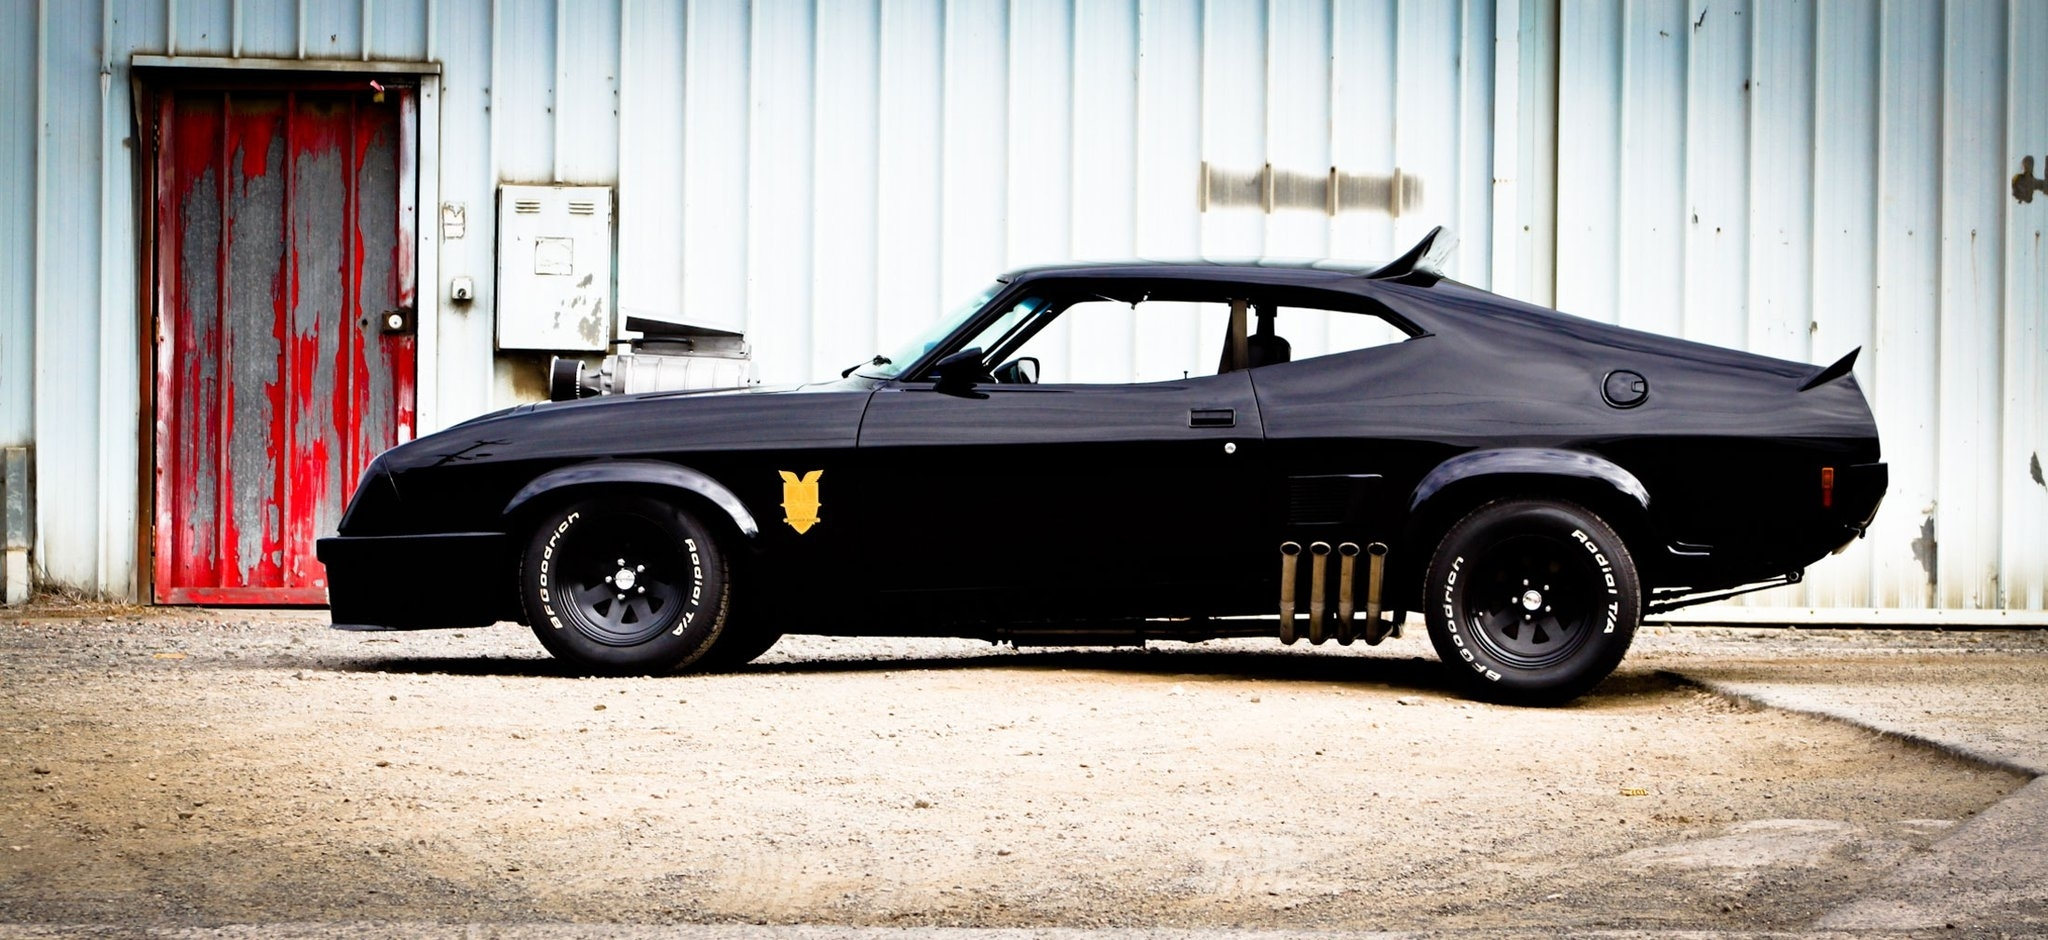 mad max interceptor ford falcon aussie muscle car ford australia vehicles cars hot rod custom muscle black stance